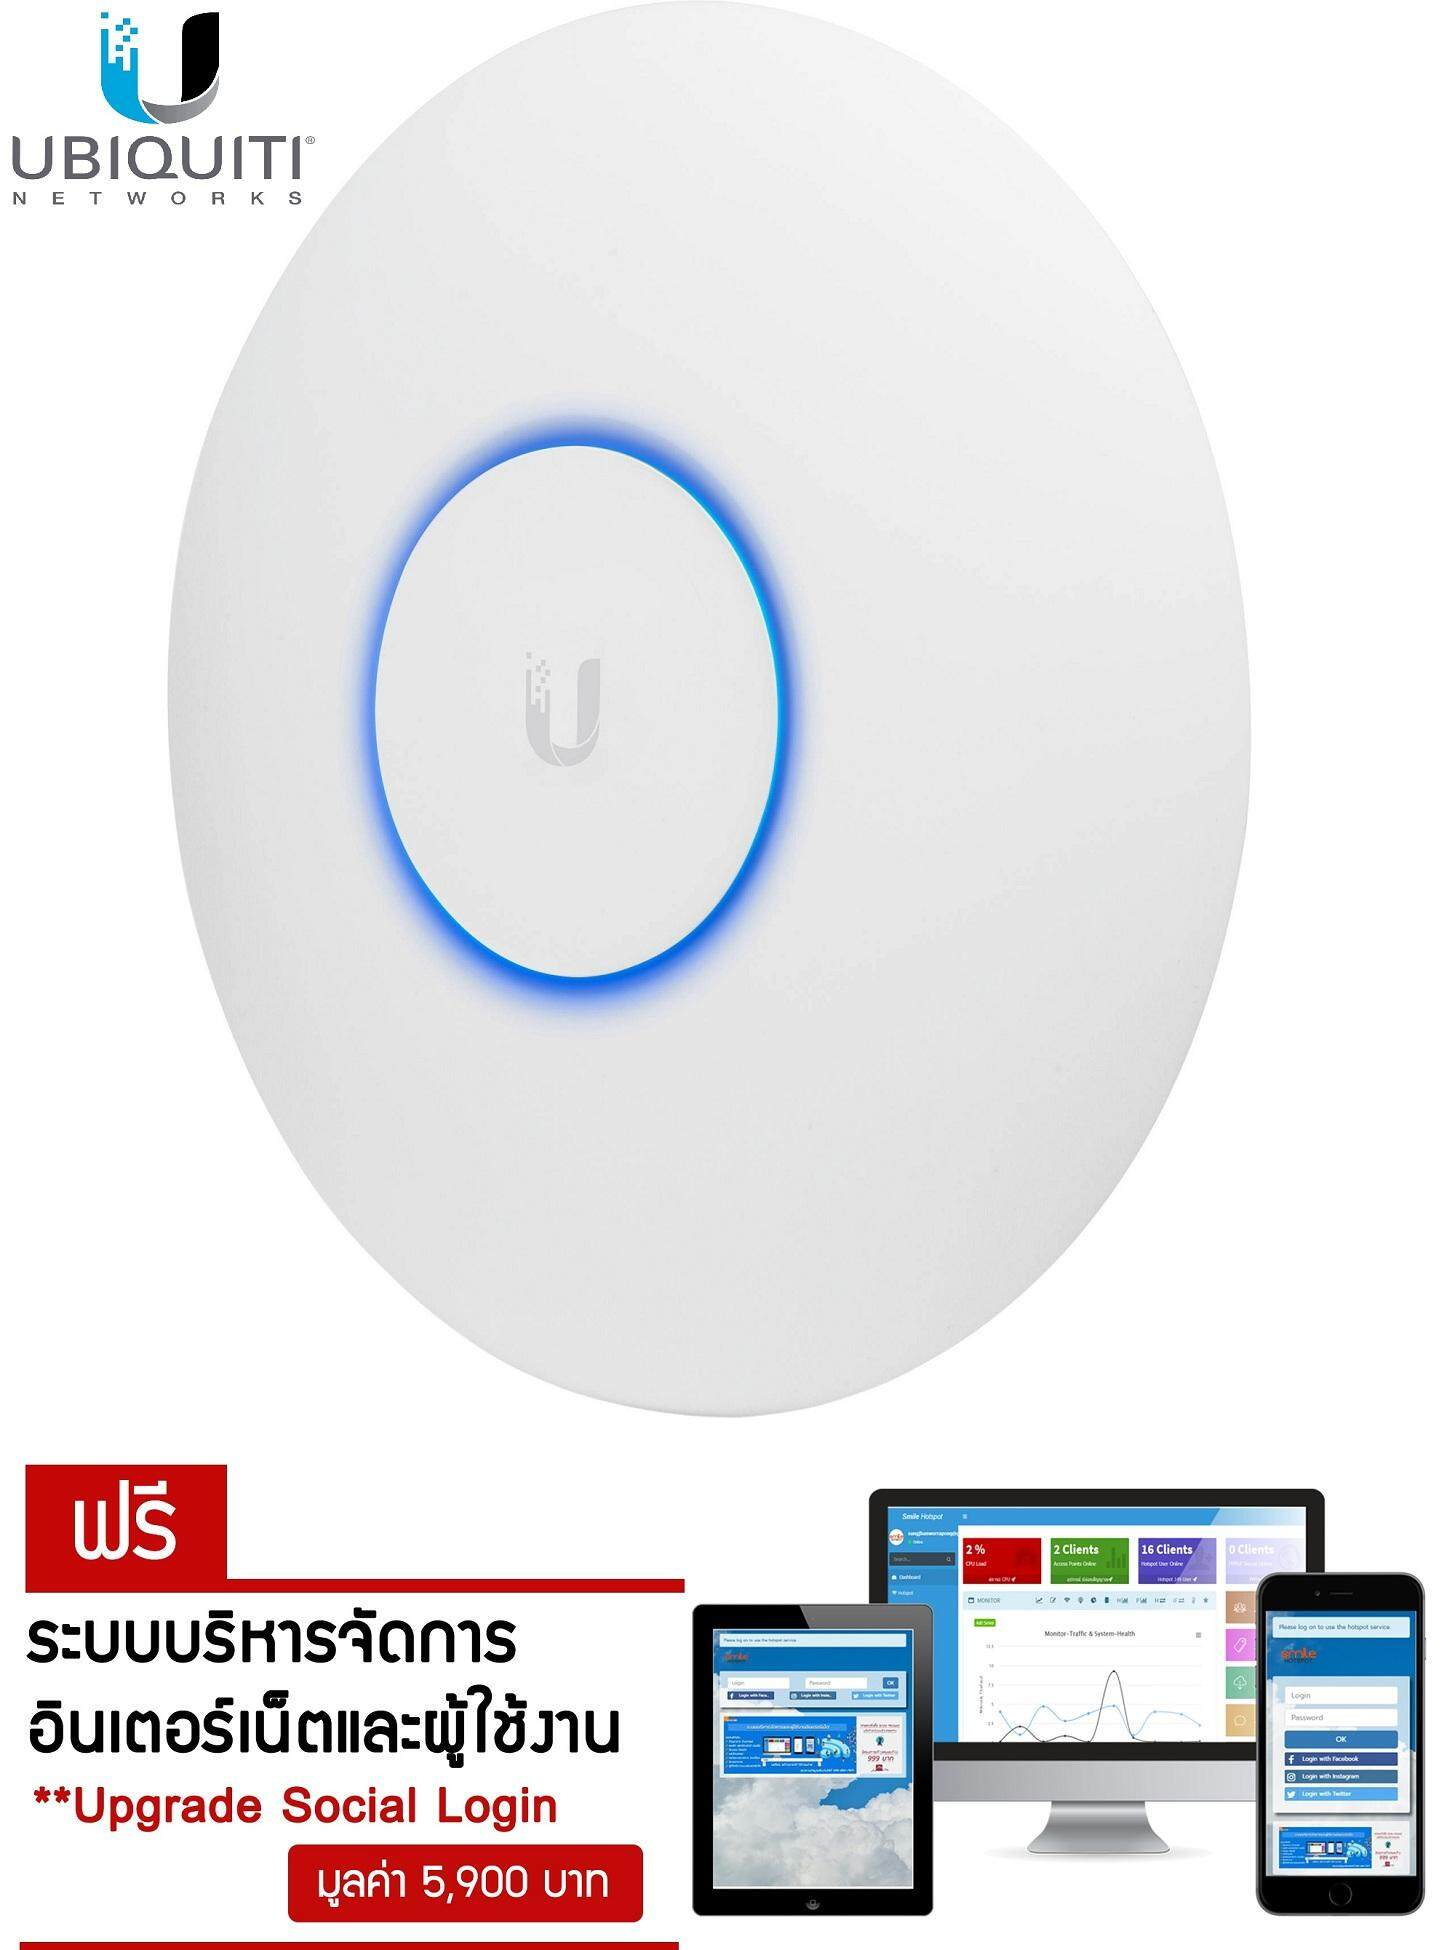 Ubiquiti Unifi nanoHD 802.11ac 2.4/5GHz Wave2 4x4MU-MIMO Access Point + Free Smile Hotspot No Monthly Fee Suitable for use with Mikrotik  Shipping By Kerry Express